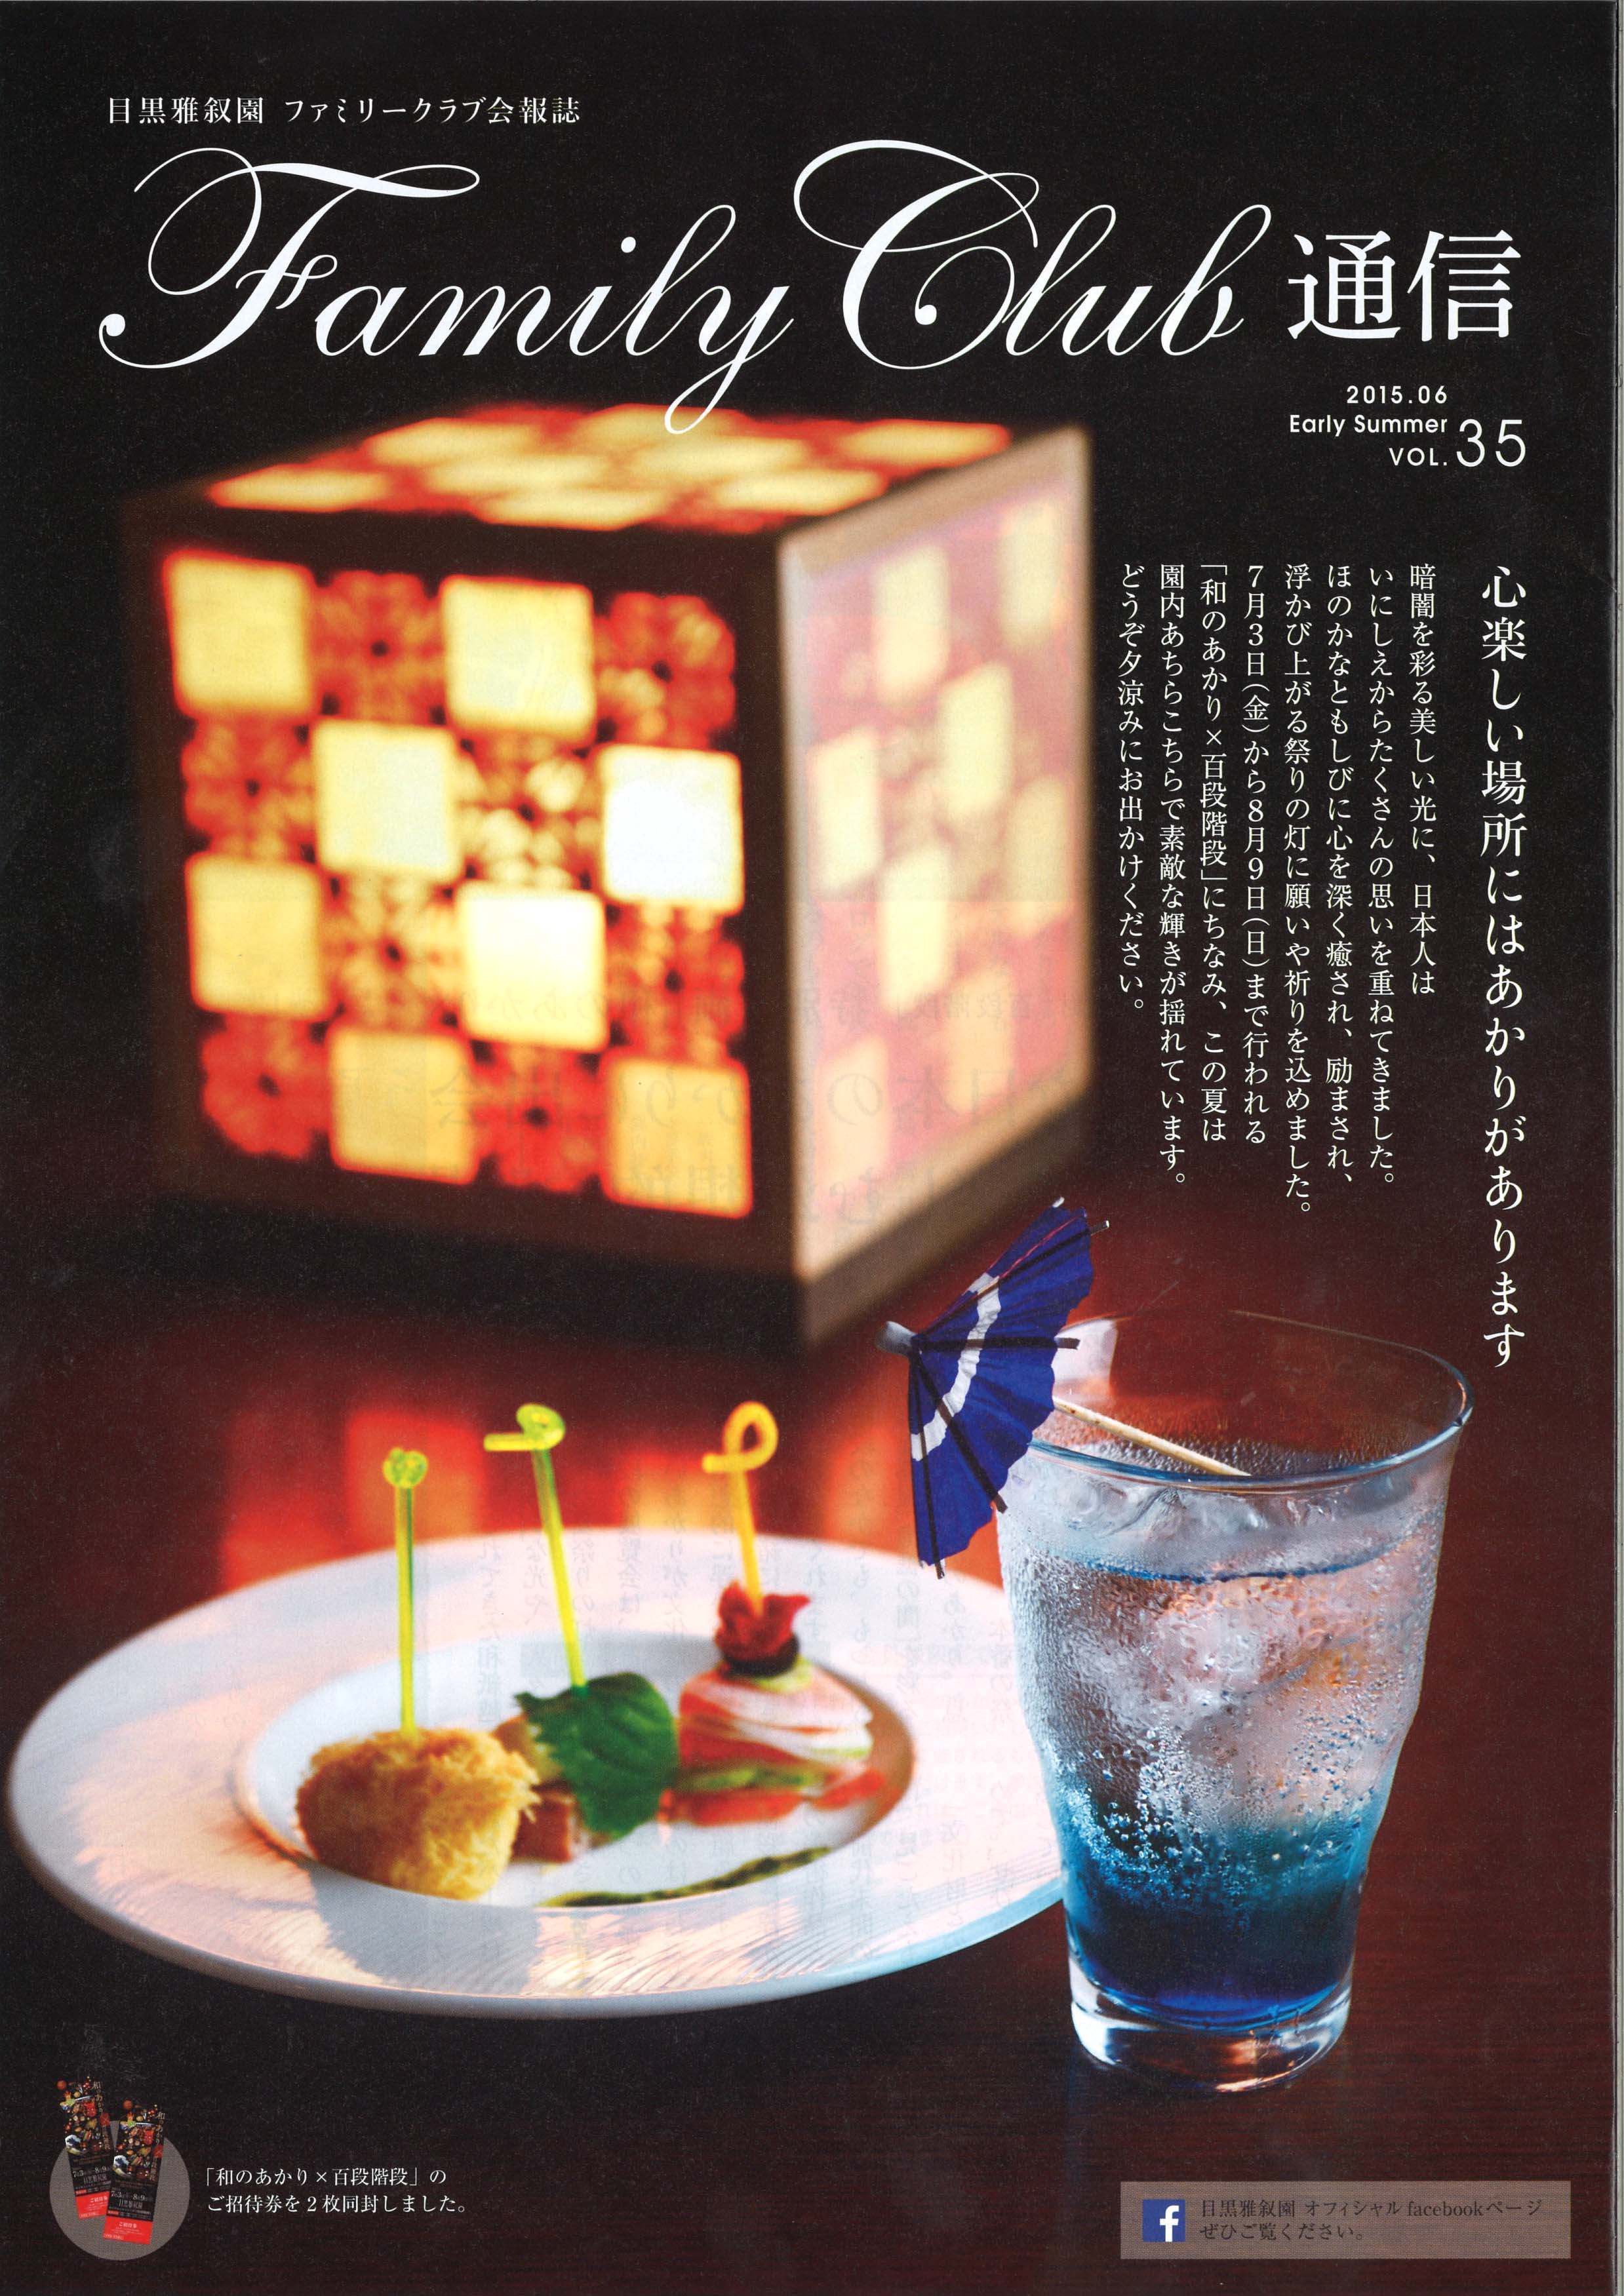 「Family Club 通信」2015.06 Early Summer VOL.35